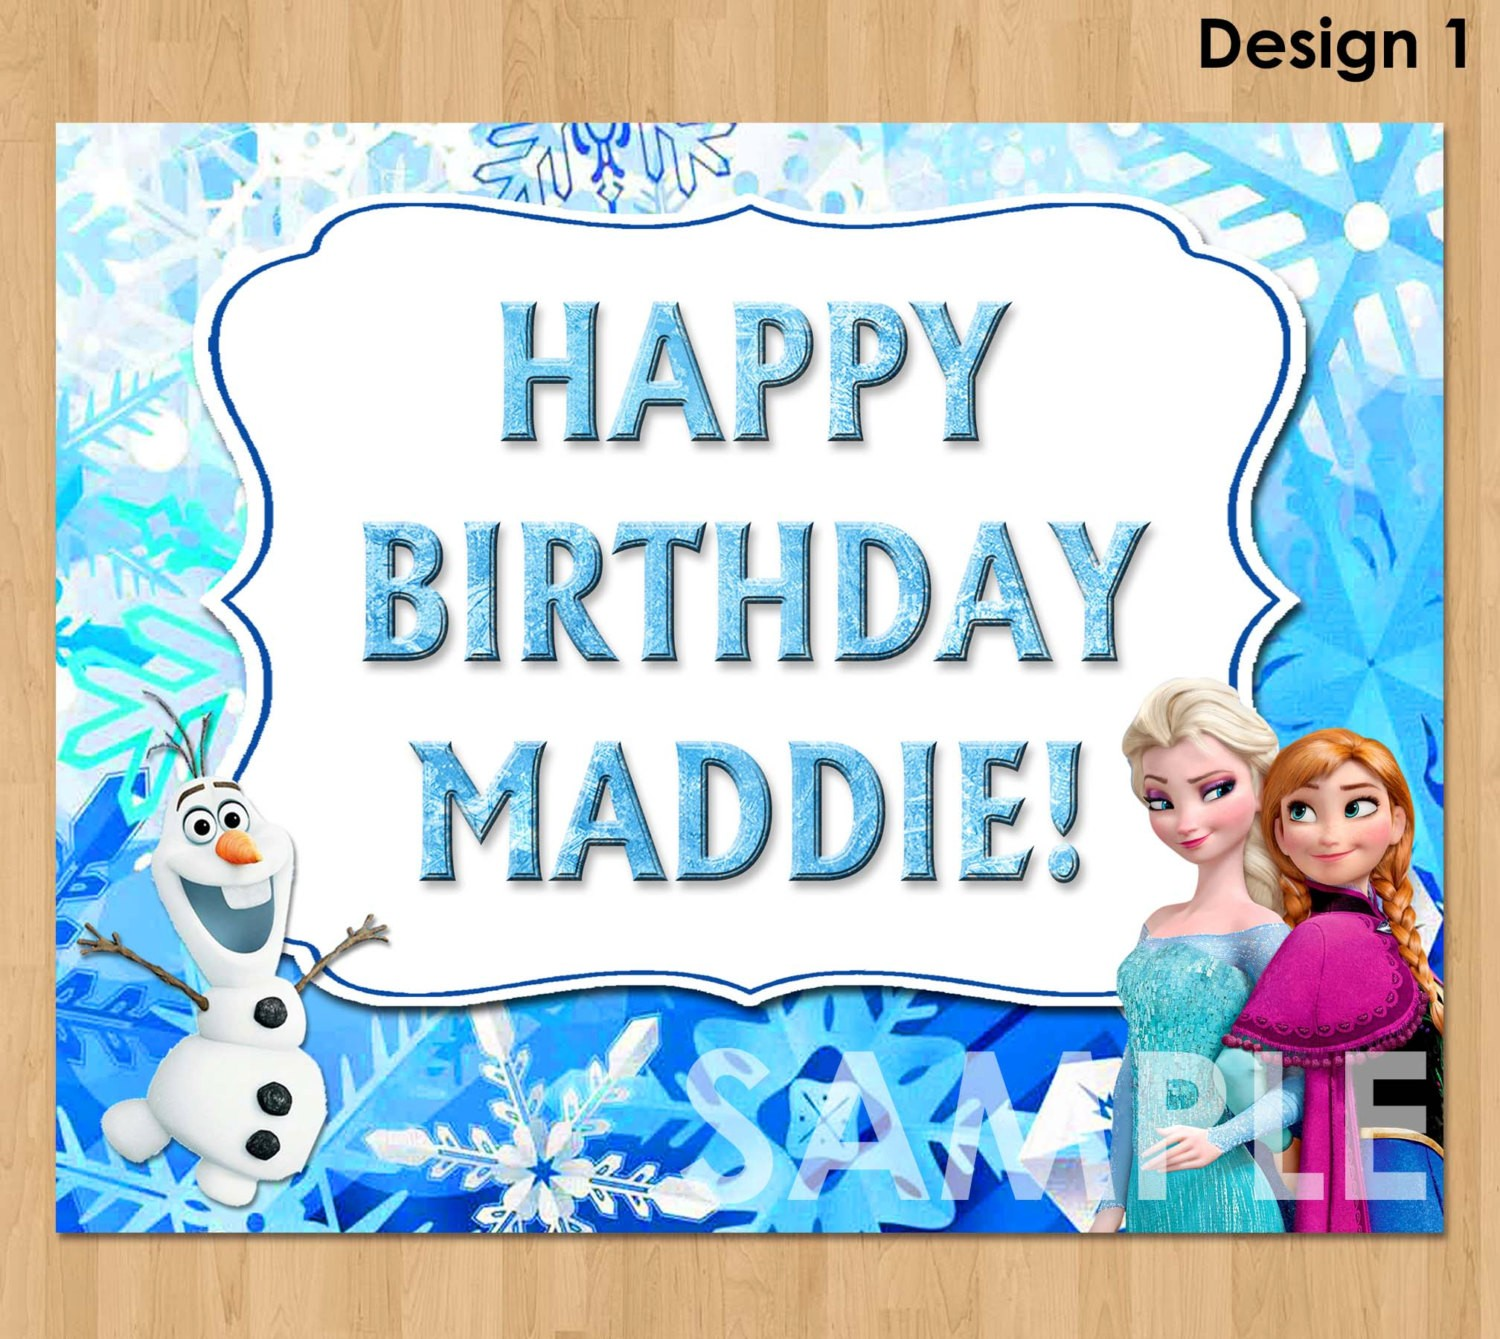 frozen wallpaper for birthday ; 2014%2520party%2520favors%2520-%2520frozen%2520sign%2520%2520frozen%2520birthday%2520party%2520sign%2520-f32234